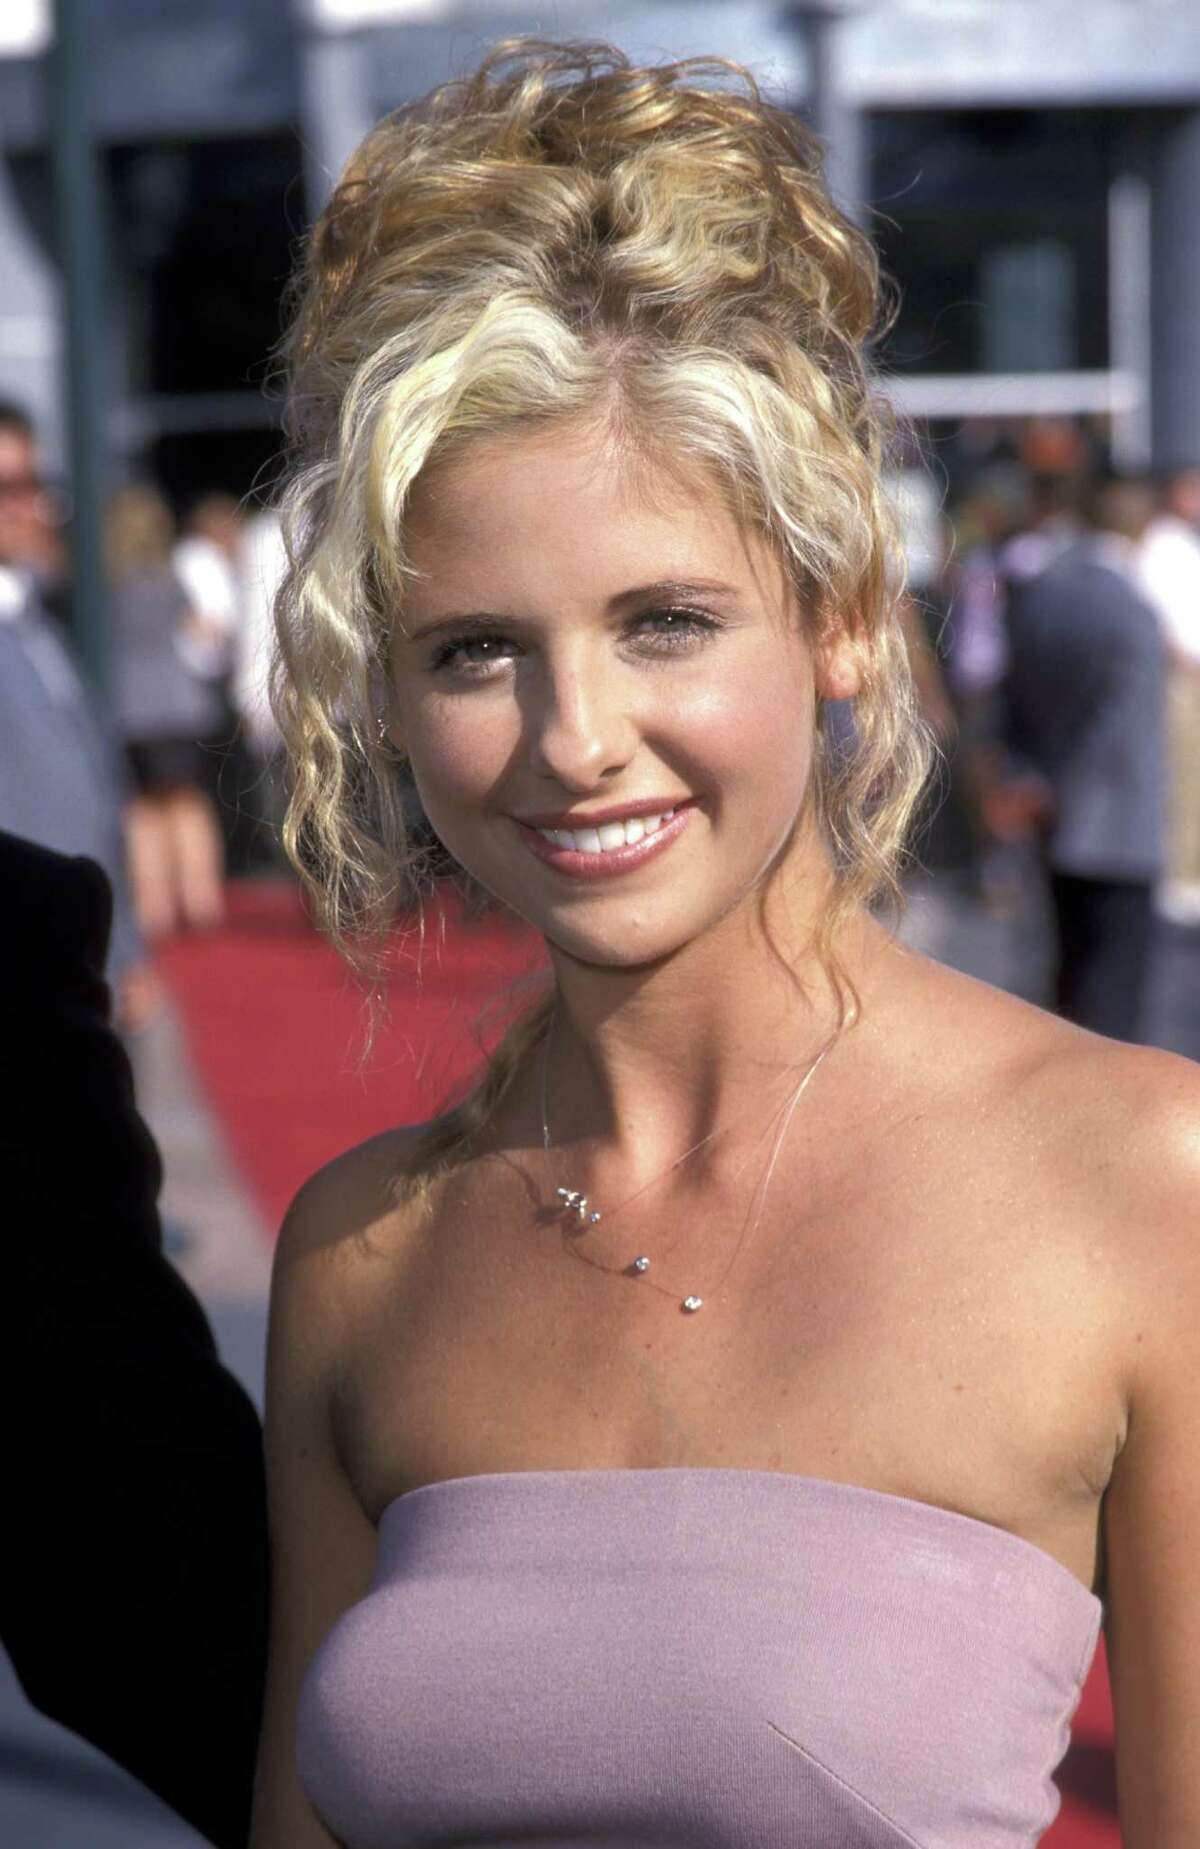 Then: Sarah Michelle Gellar played the villainous rich girl Kathryn Merteuil who who bets her step-brother that he can't seduce the headmaster's daughter and generally screws with lives of whomever she gets an itch to.